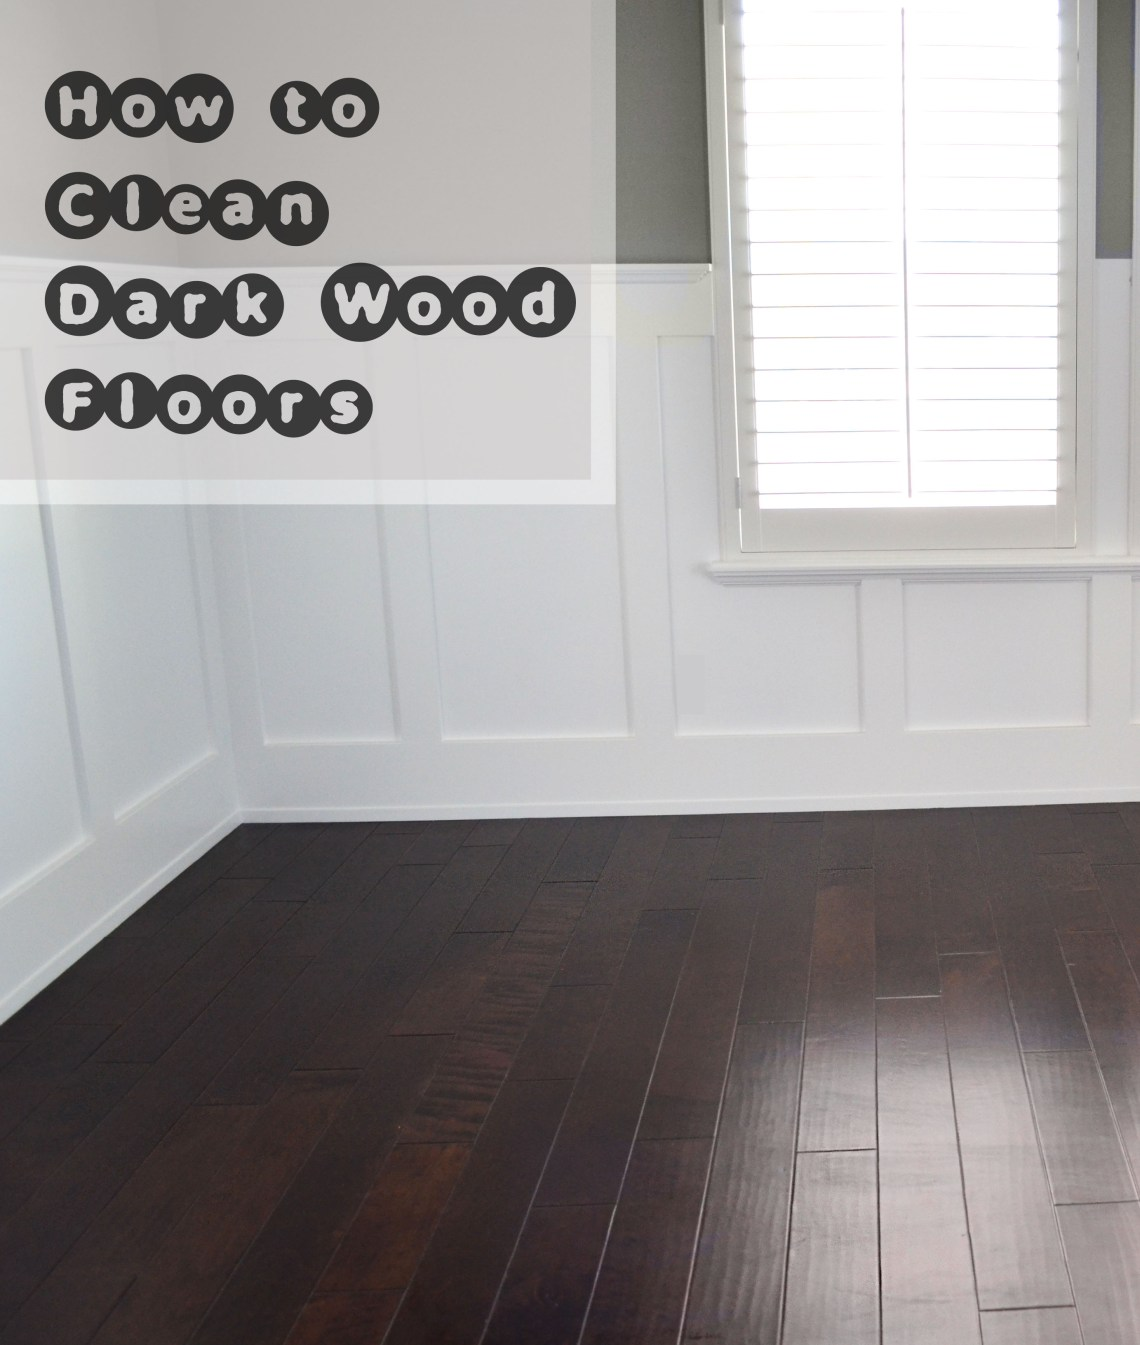 Image Result For What Is The Best Thing To Clean Hardwood Floors With